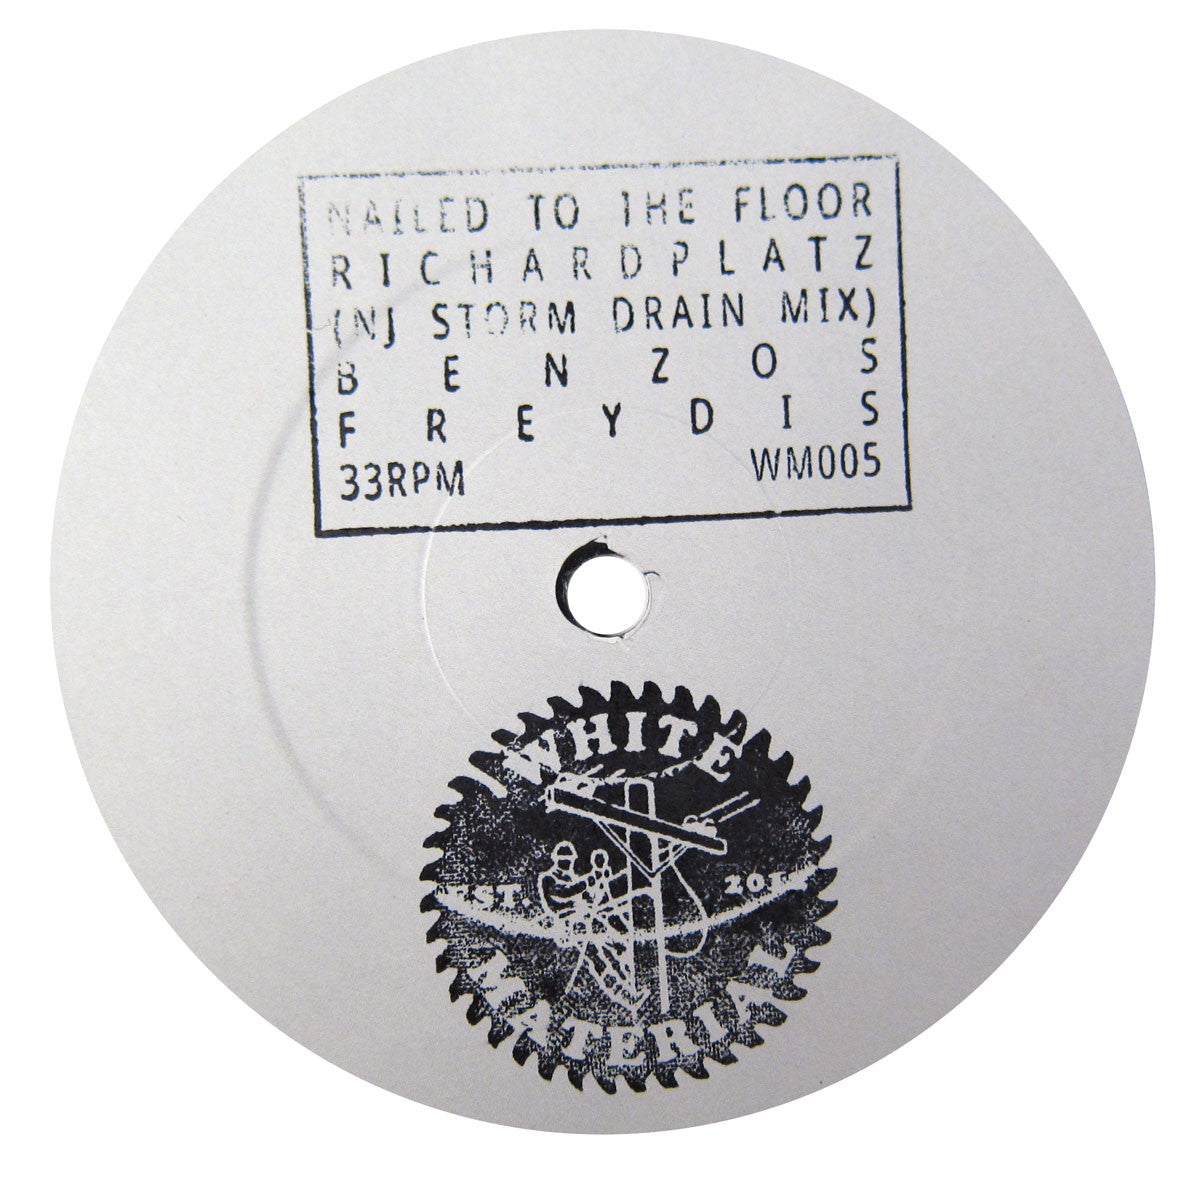 DJ Richard: Nailed to the Floor (NJ Storm Drain Mix) Vinyl 12""